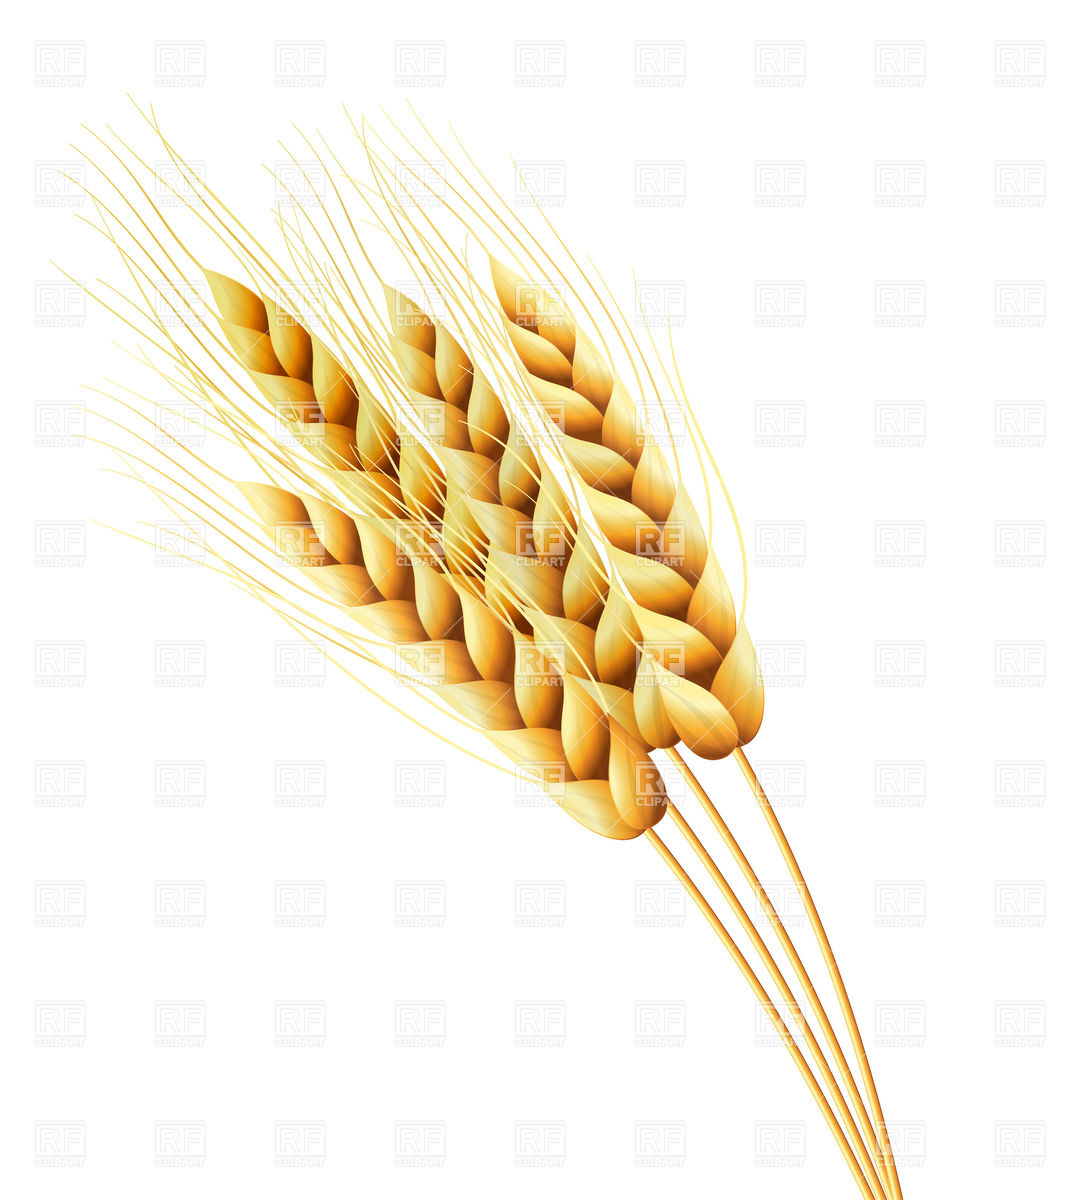 Ears Of Wheat Or Rye 6046 Food And Beverages Download Royalty Free